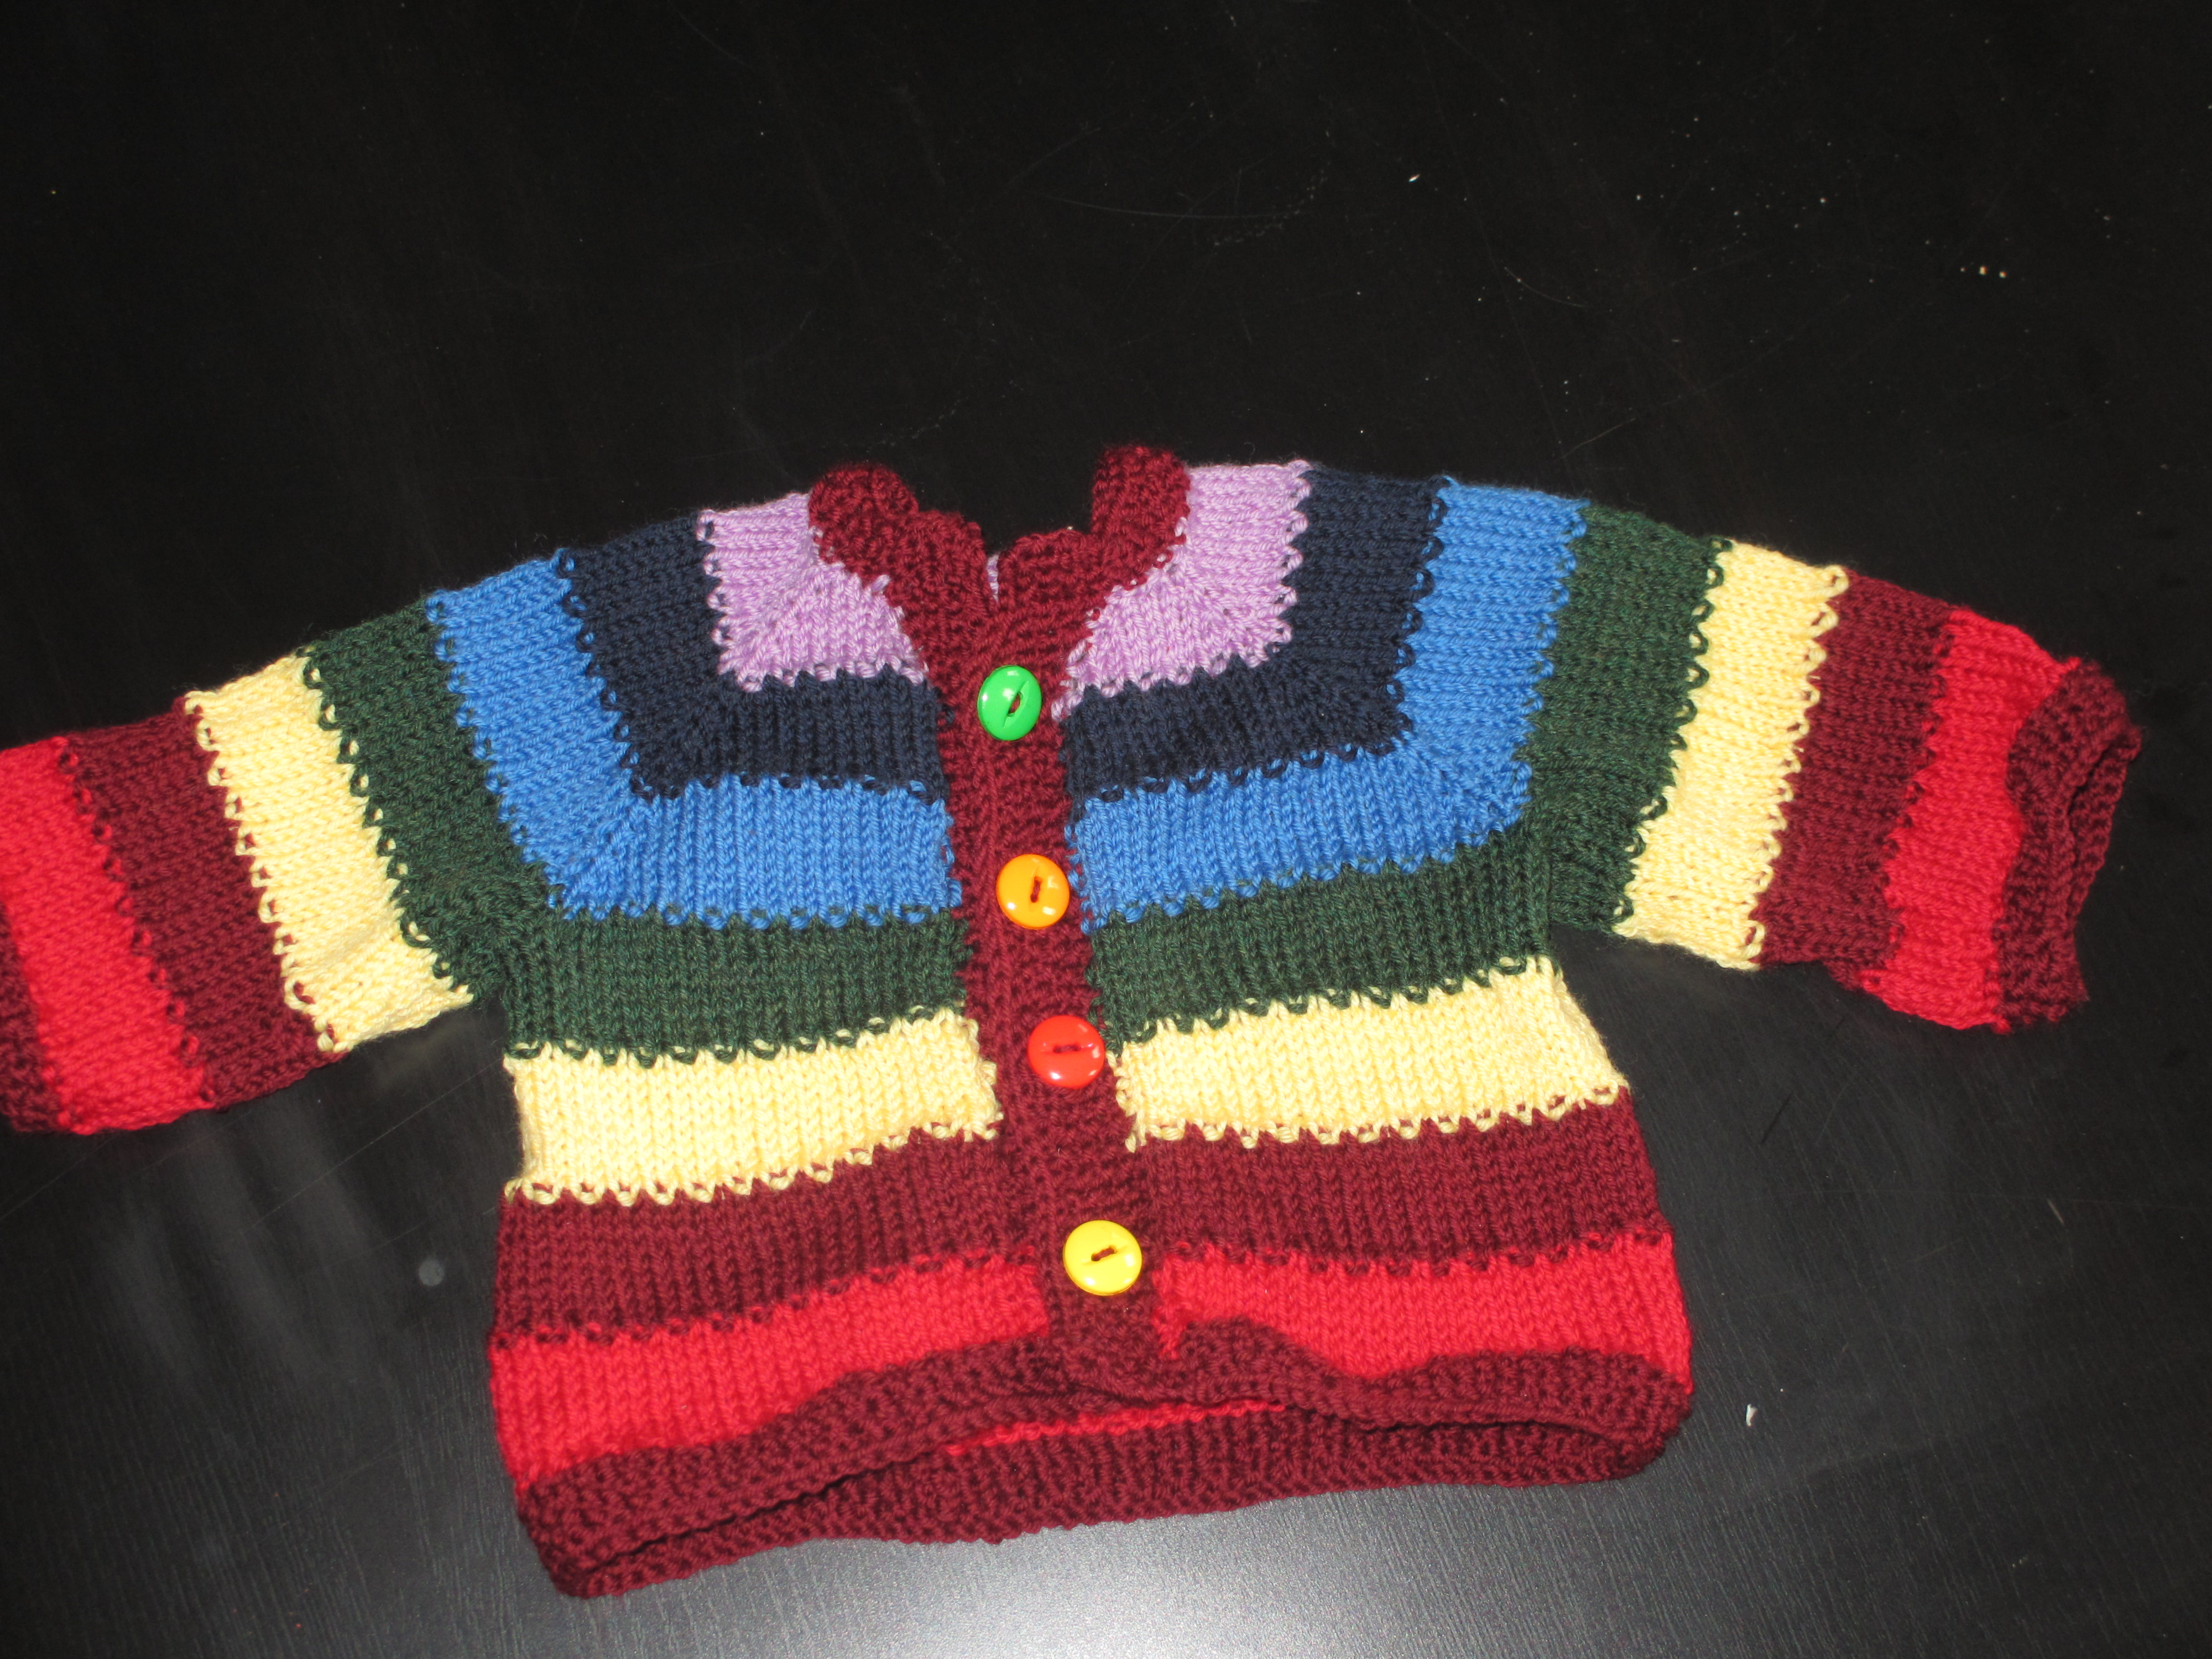 Tulip sweater, made with superwash yarn.